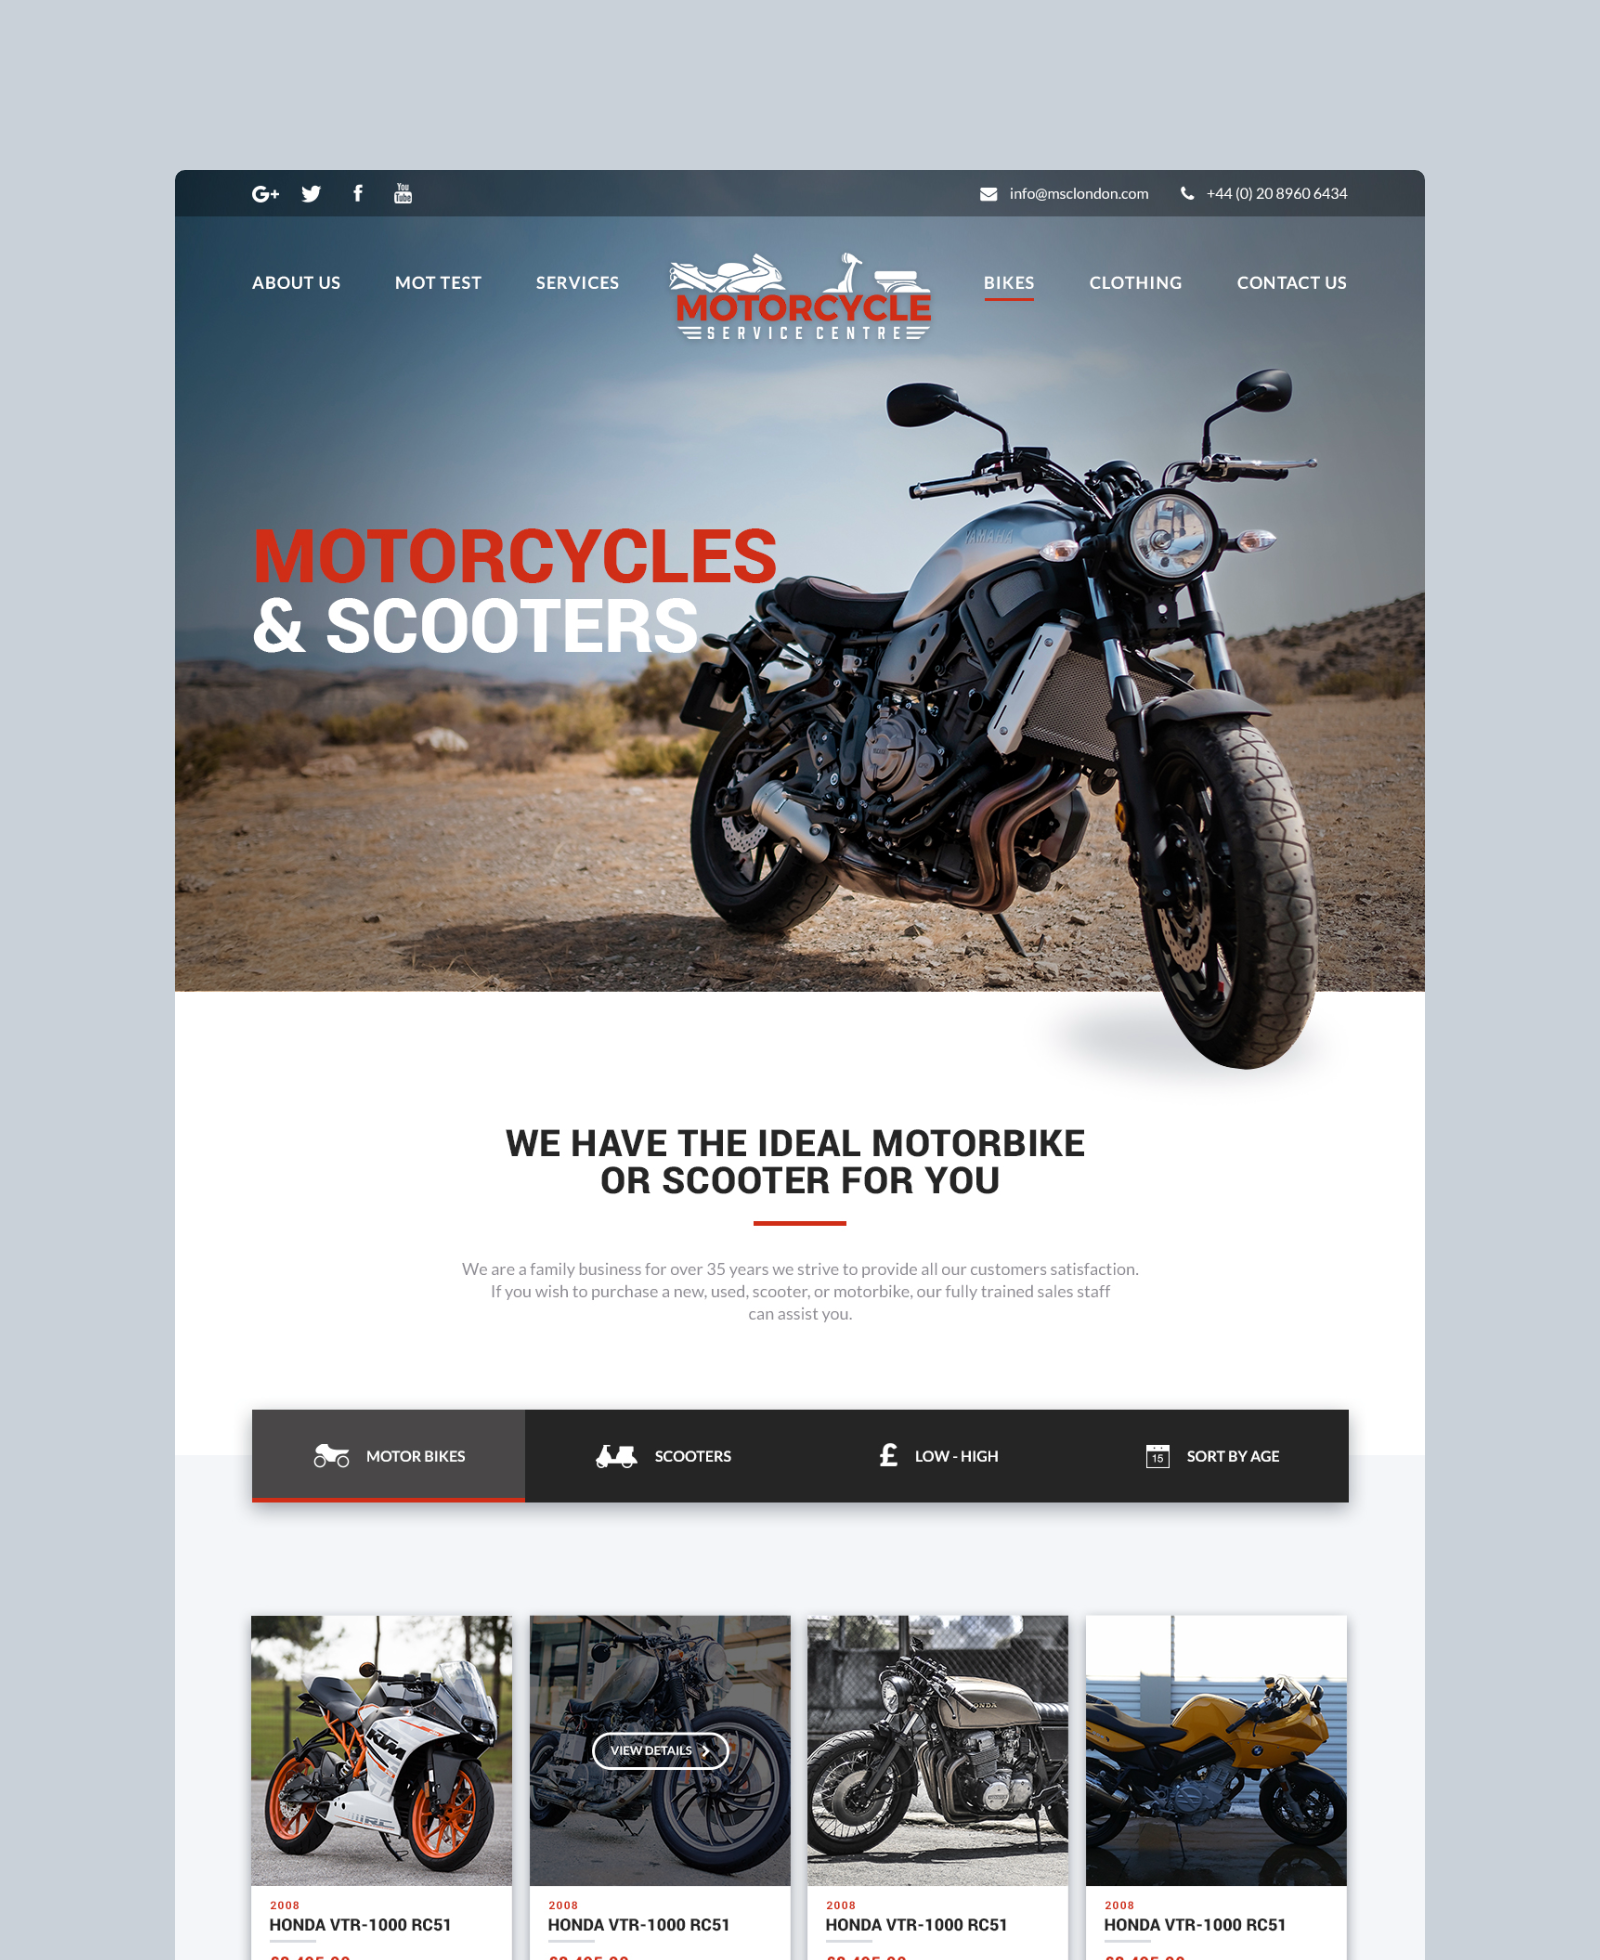 Motorcycle Service Centre Sales Page